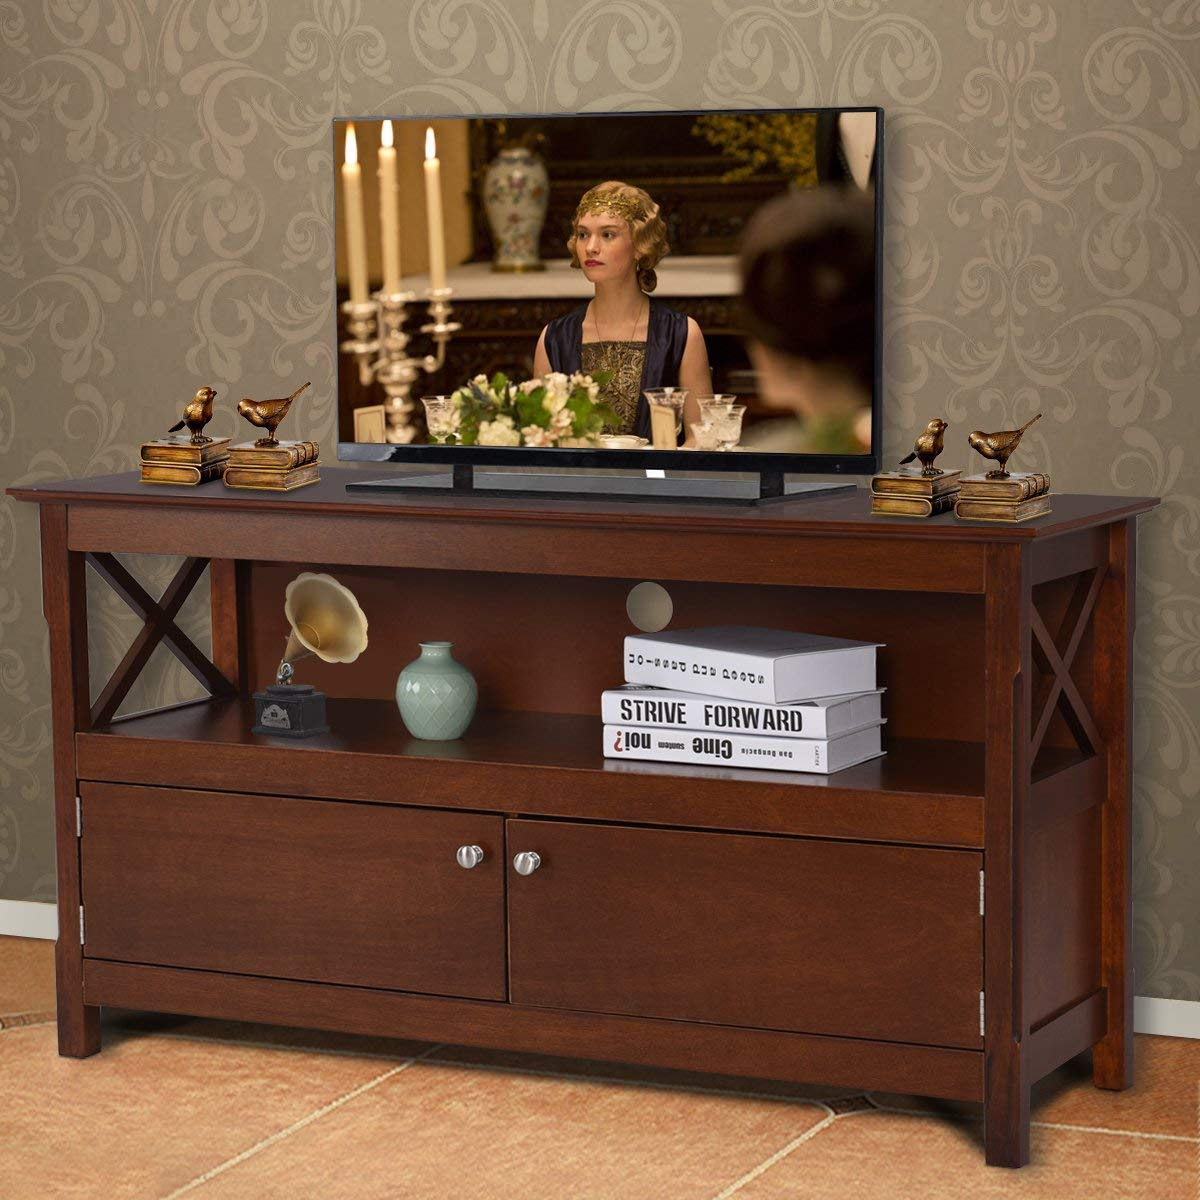 Tangkula Wood TV Stand, Modern Multipurpose Home Furniture Storage Console Entertainment Media Center Brown